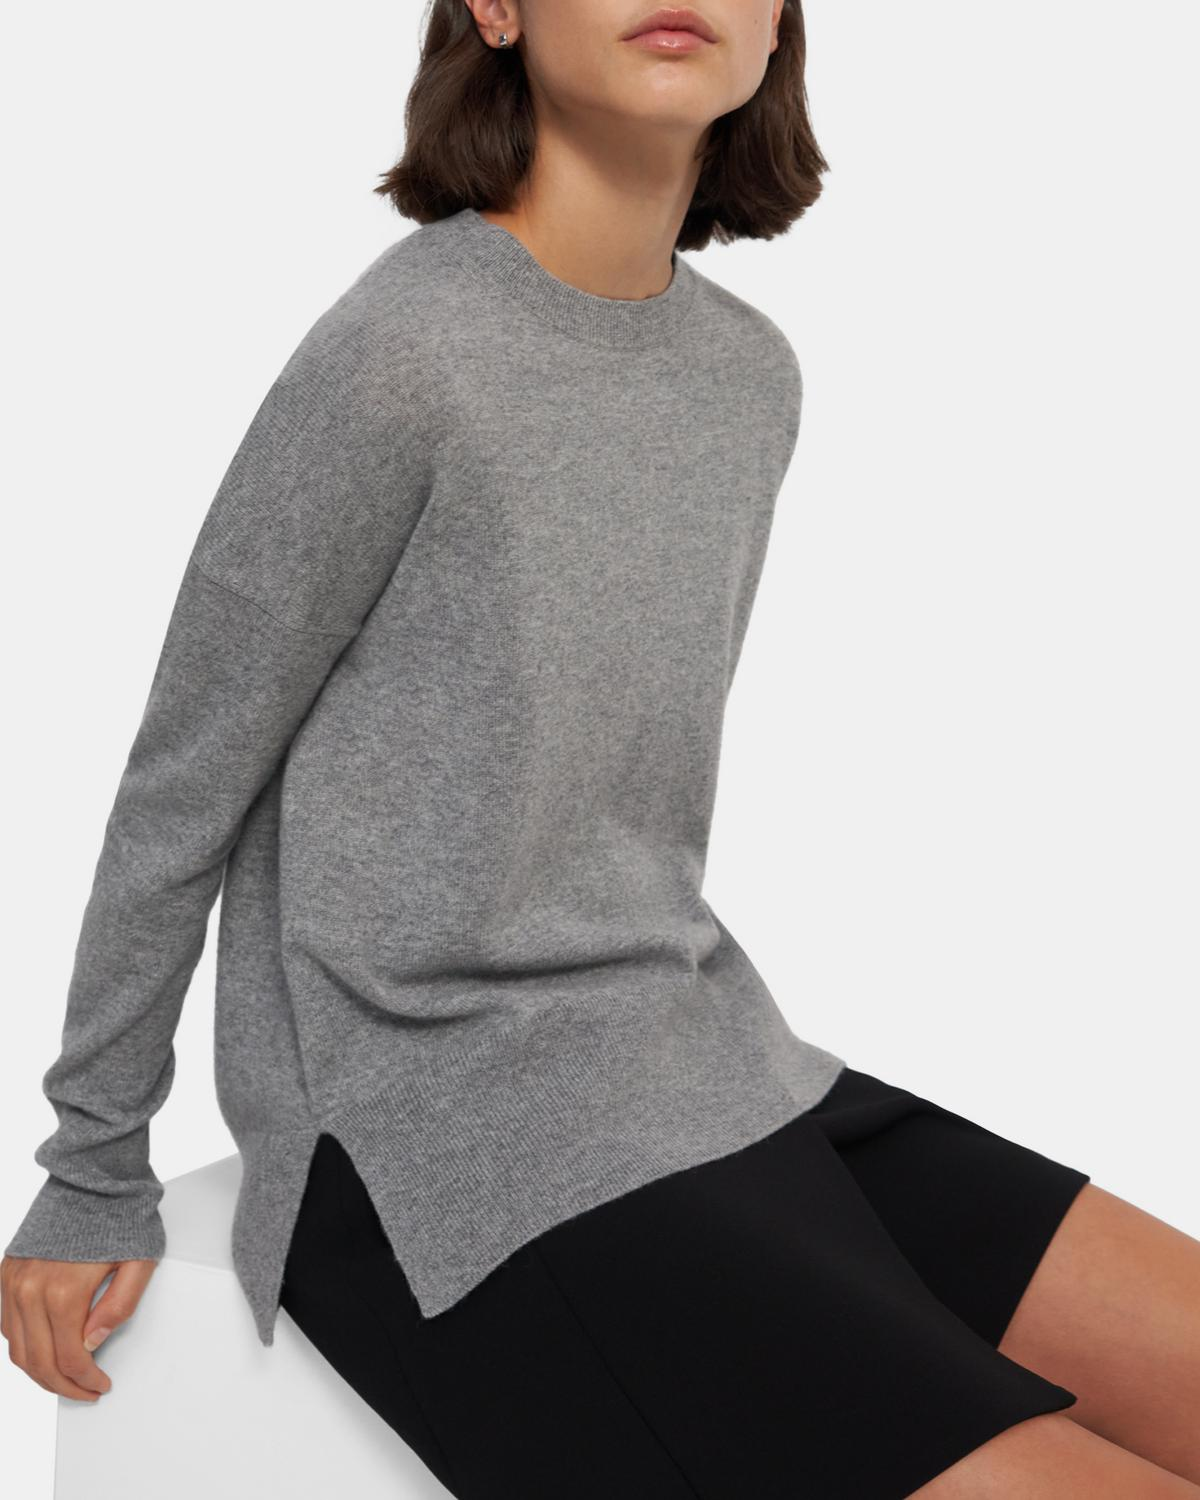 Karenia Sweater in Cashmere